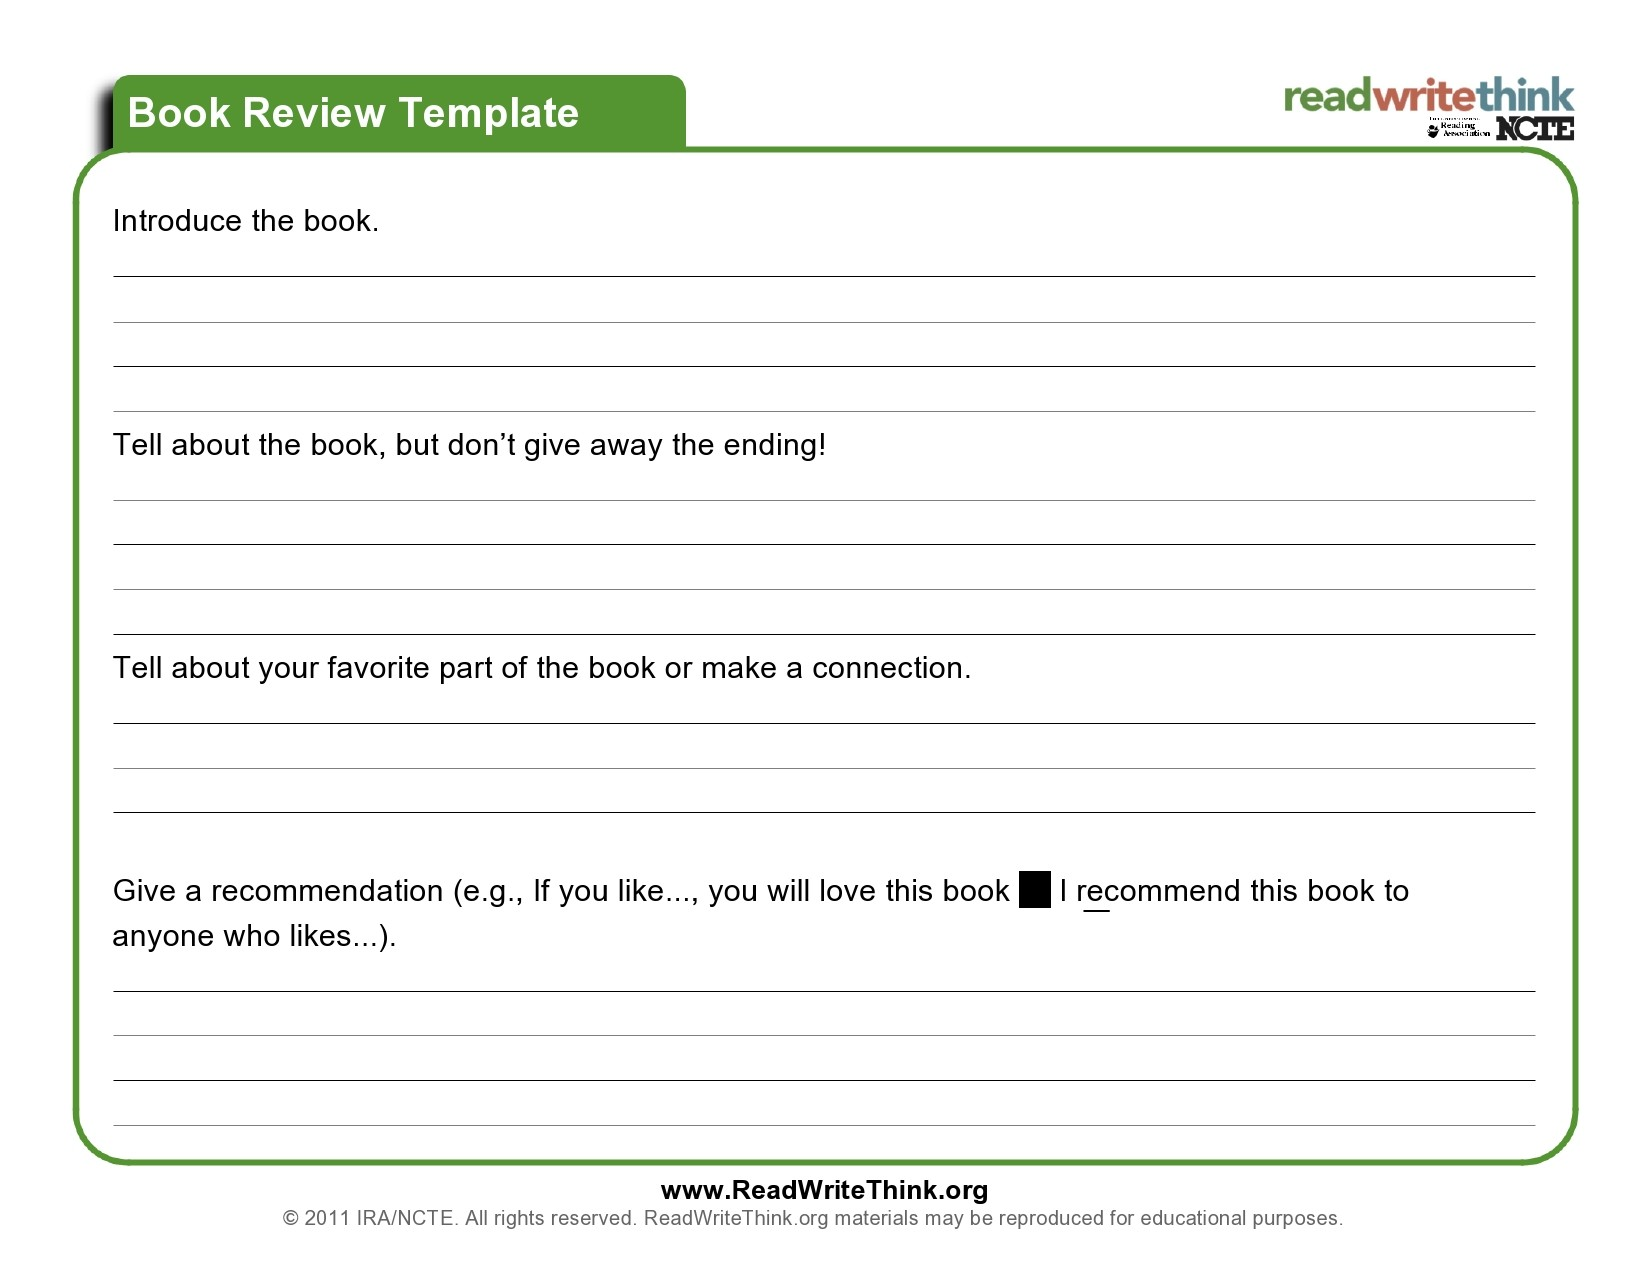 Free book review template 01